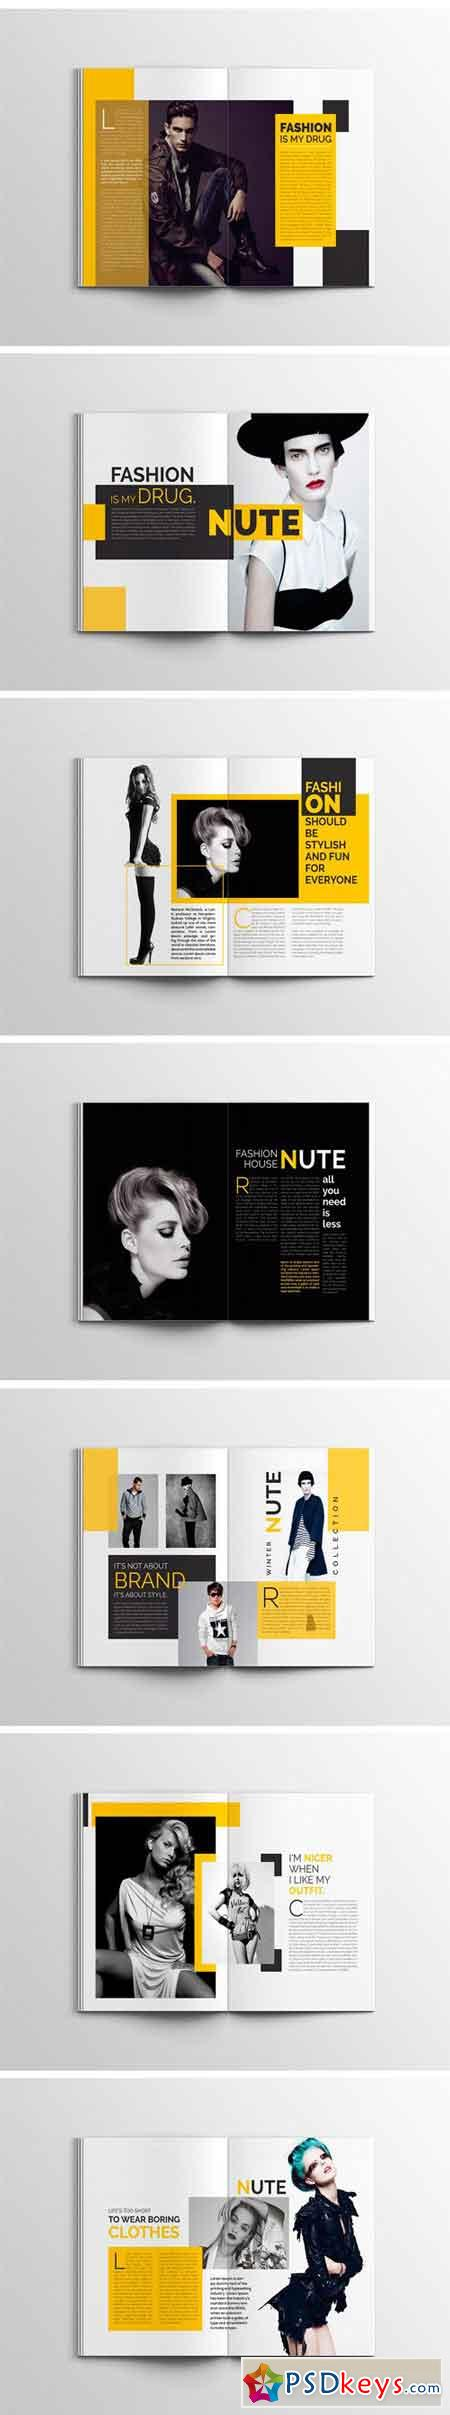 Nute Fashion Magazine Template 1739541